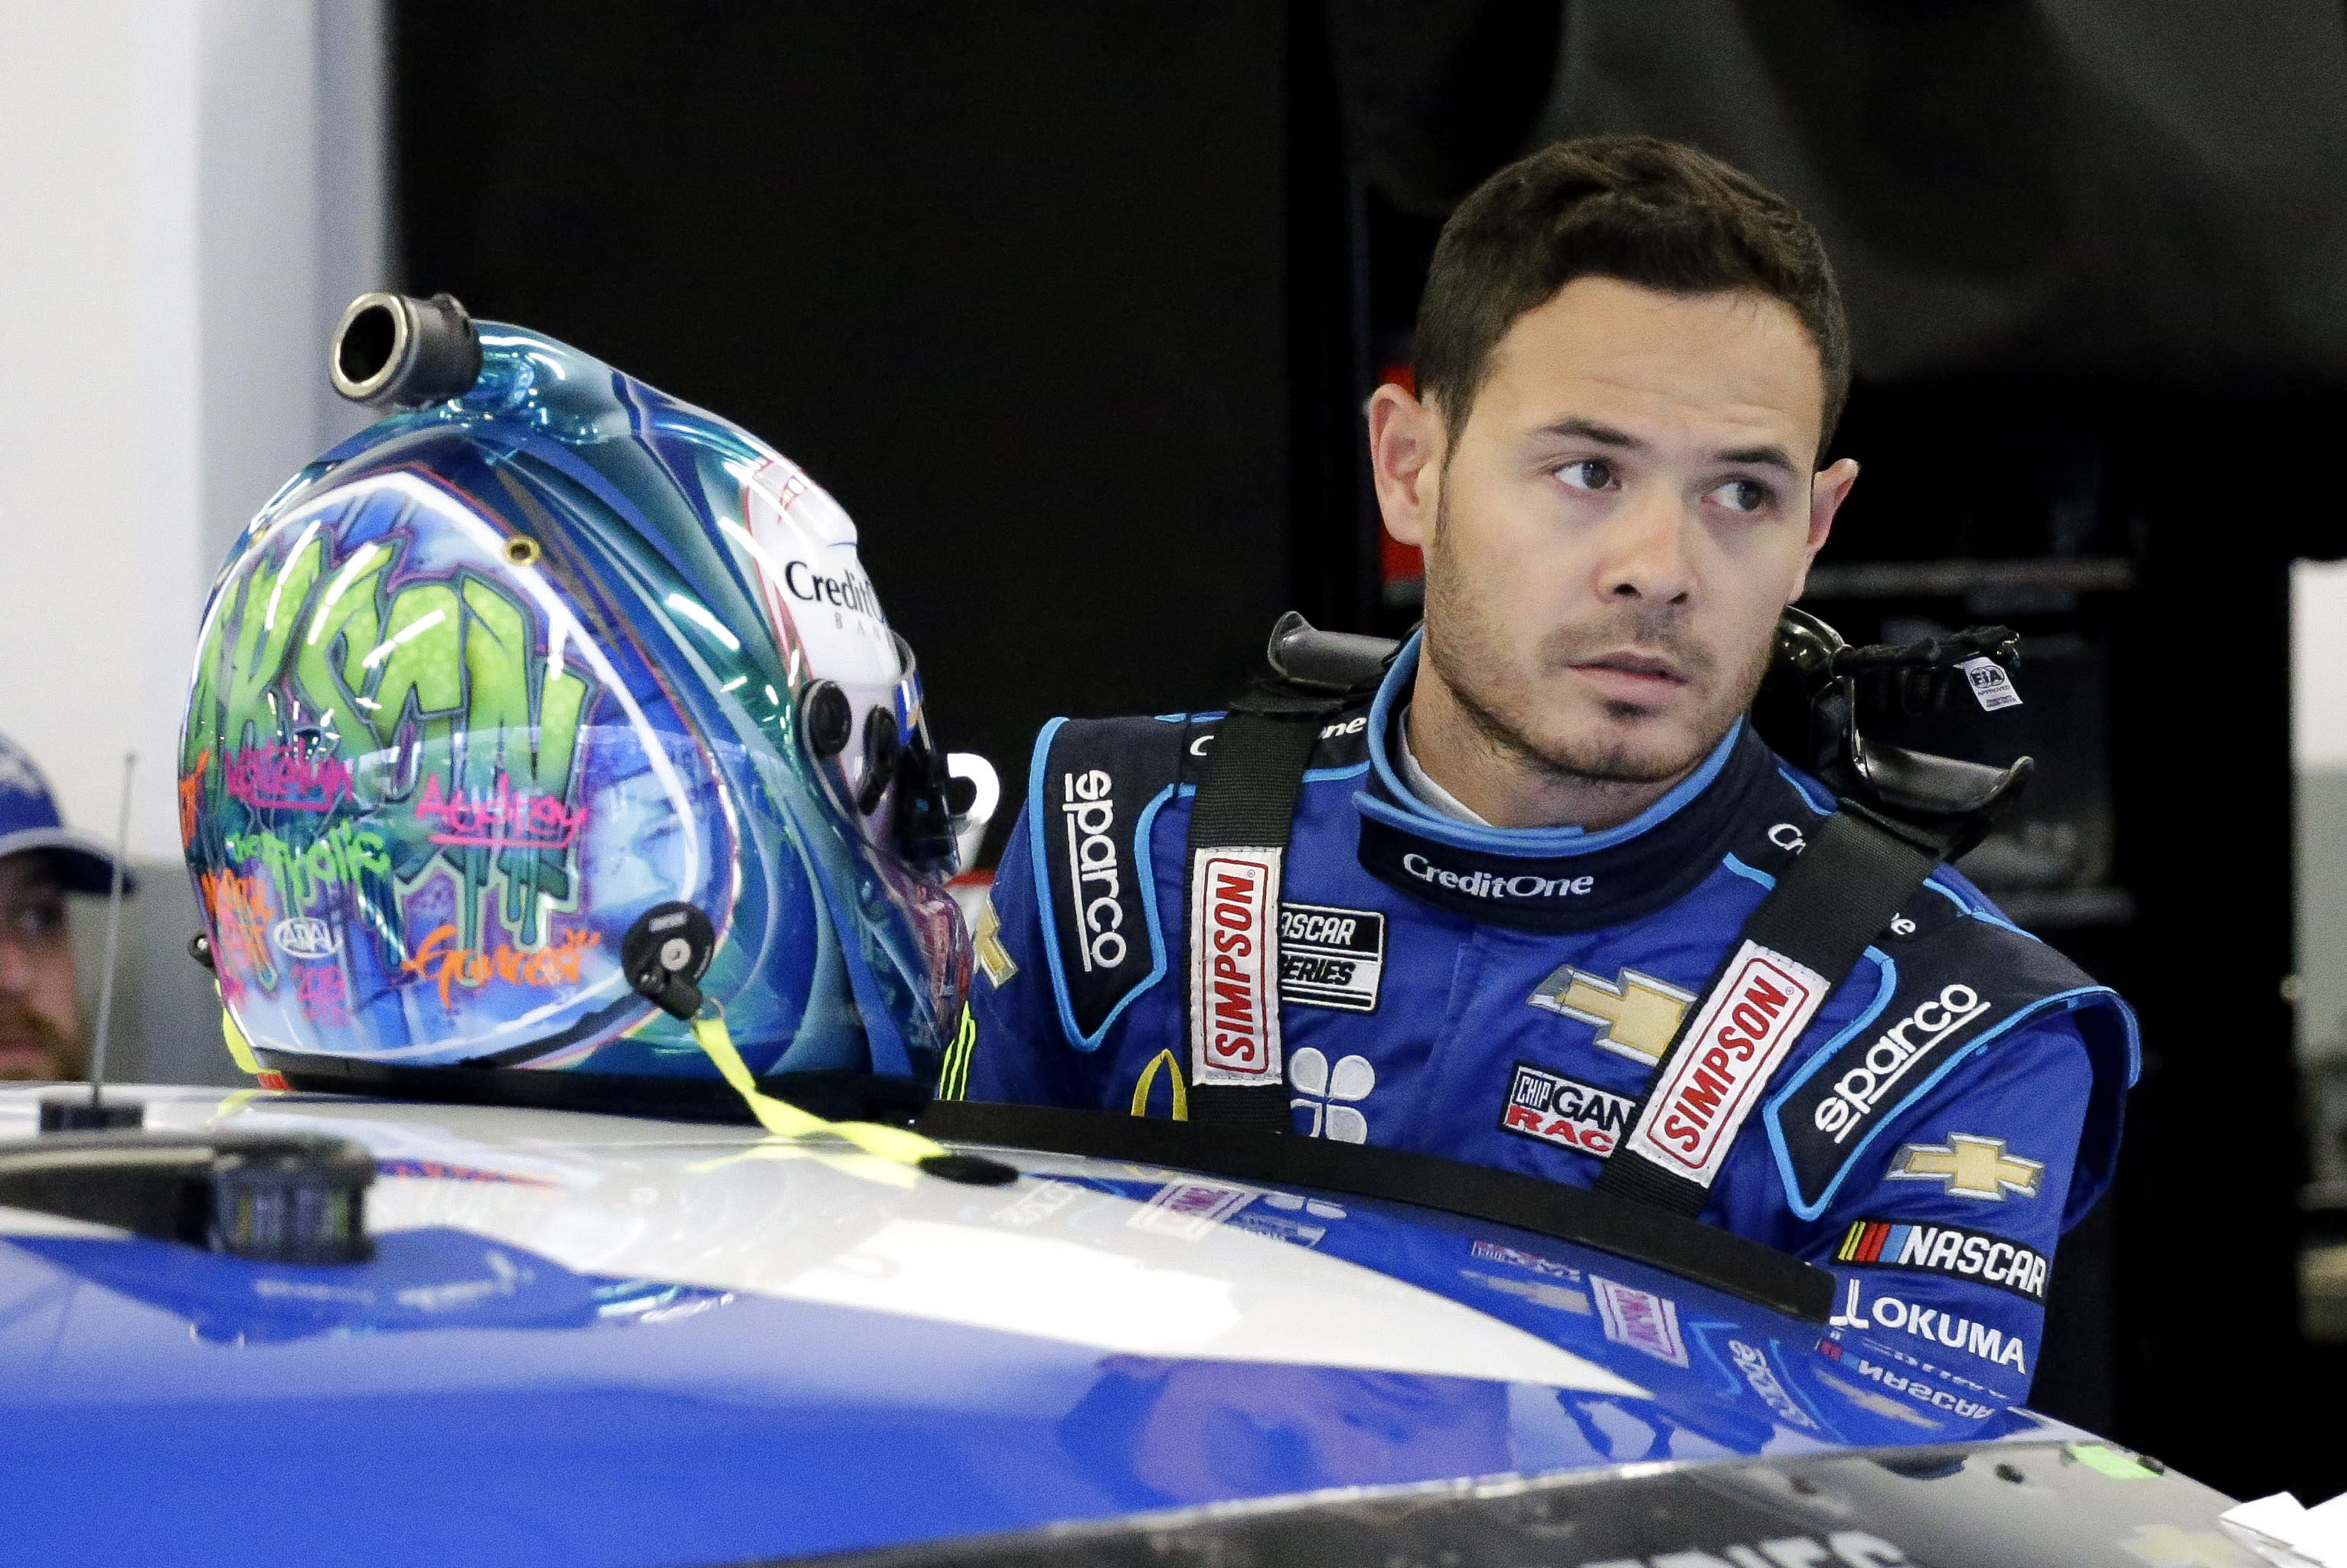 3-time MIS NASCAR victor Kyle Larson drops N-word in iRace